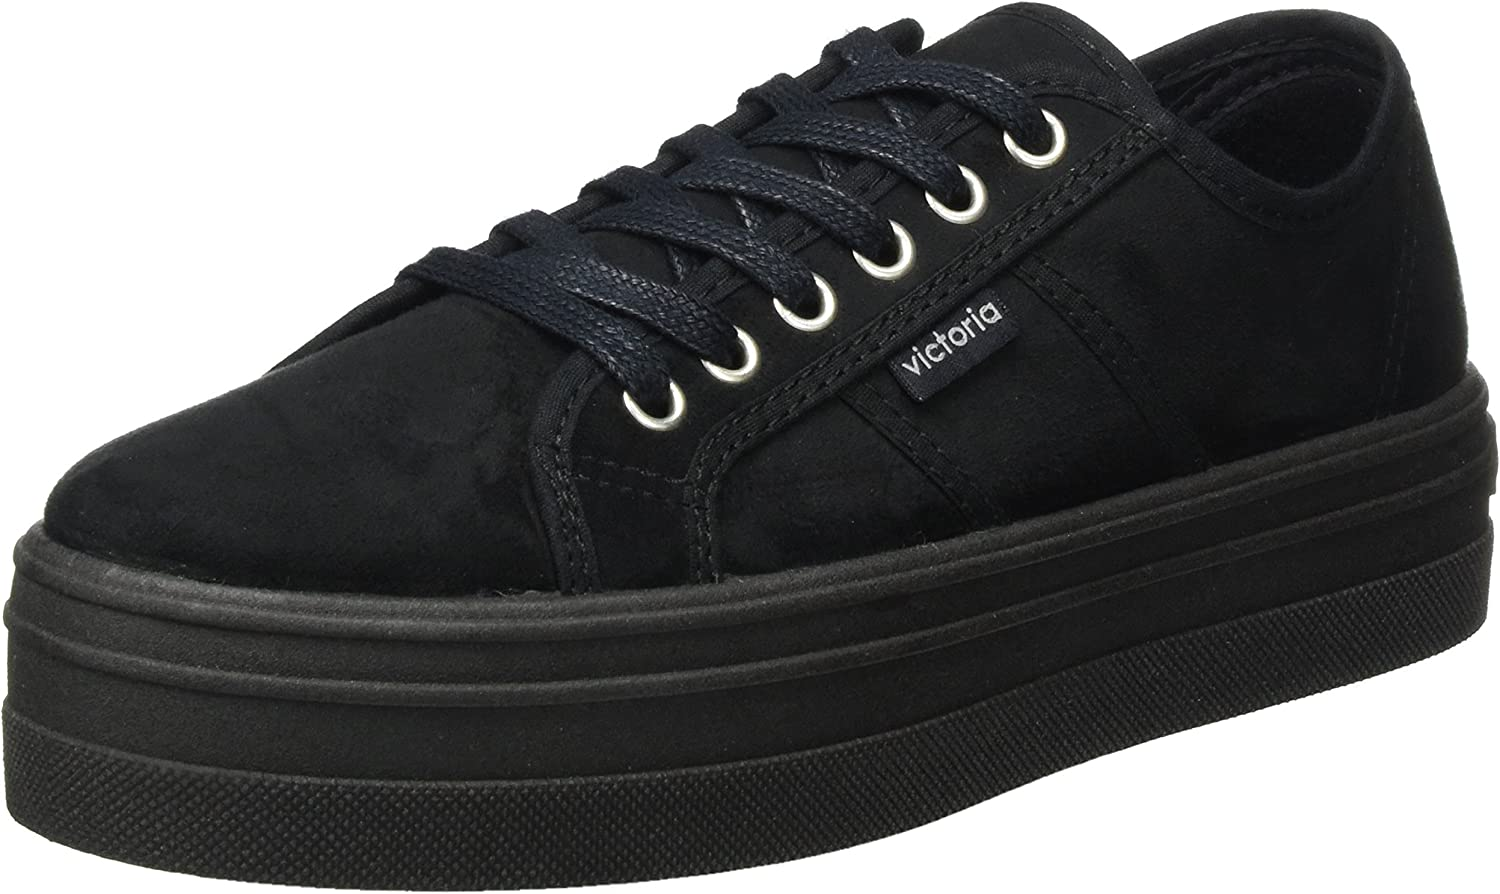 Victoria shoes Woman Low Sneakers with Platform 09205 Black